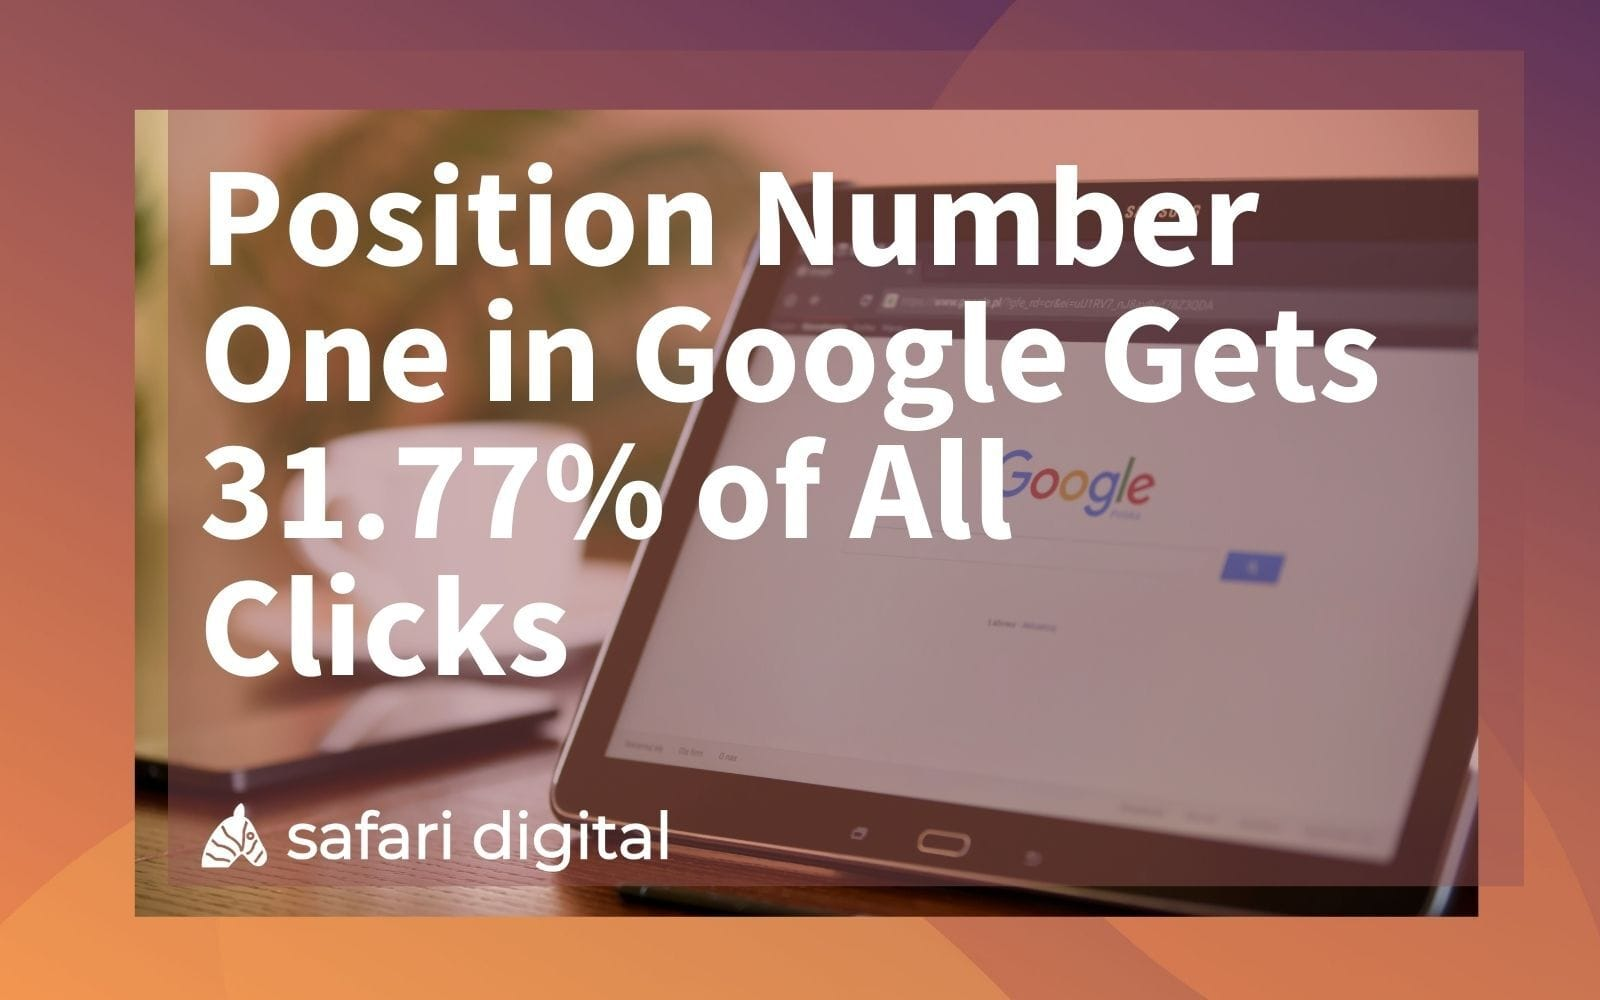 Position Number One in Google Gets 31.77% of All Clicks